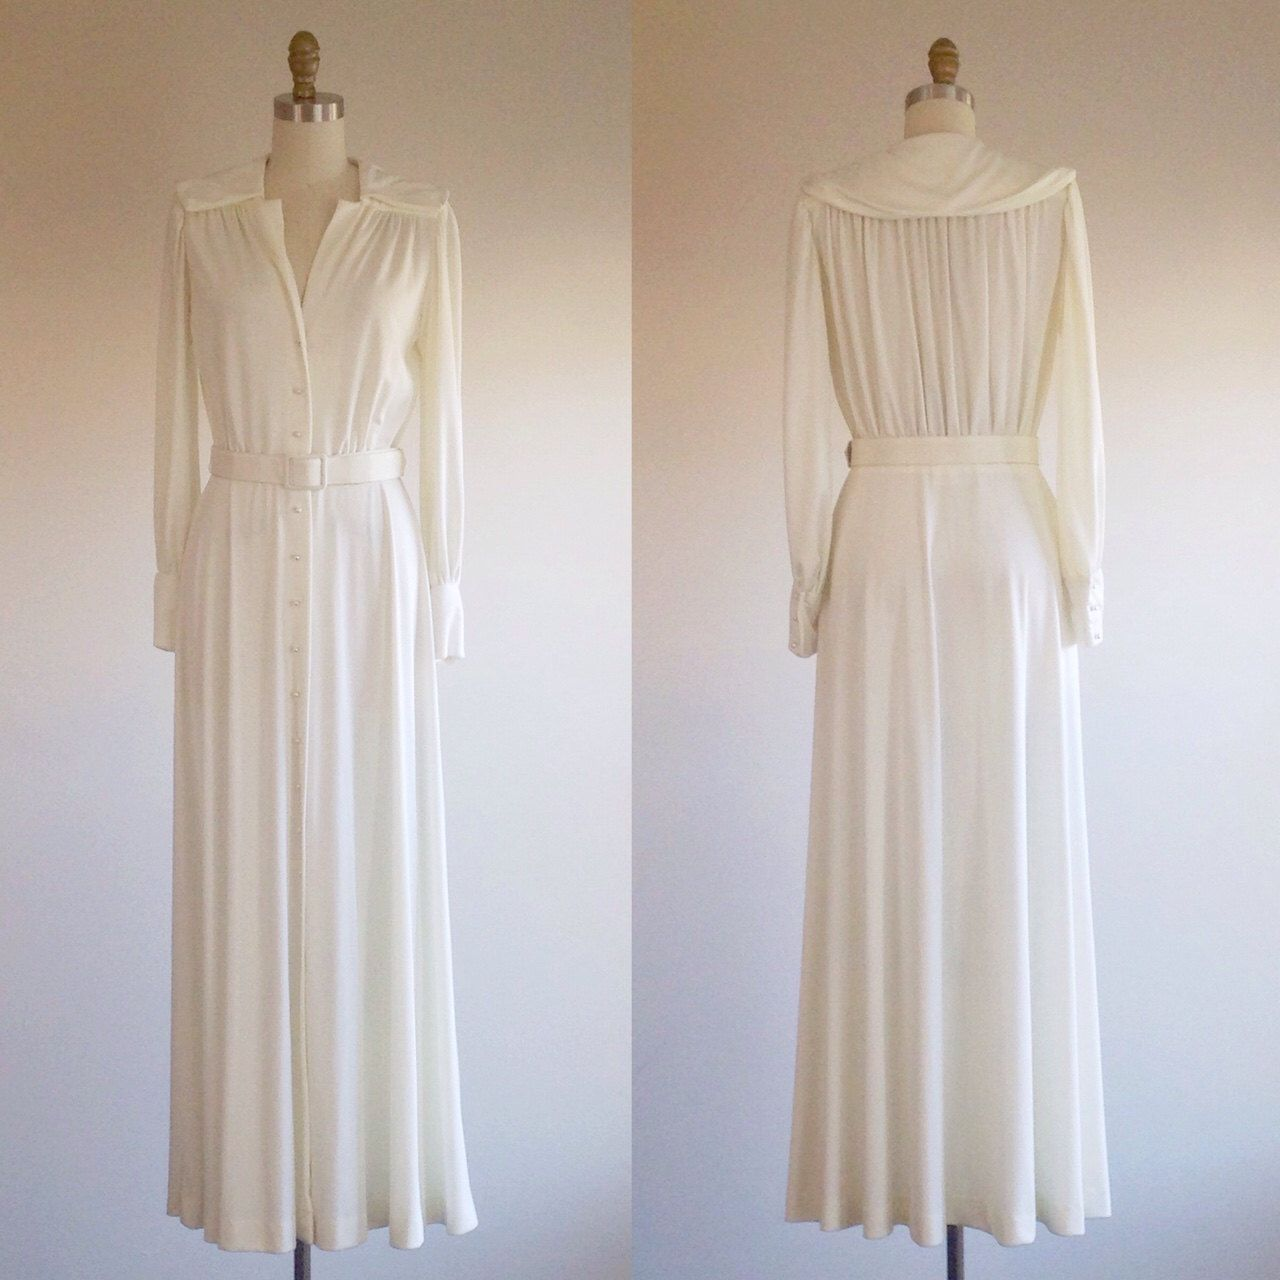 Ivory wedding dress Bridal gown 1970s wedding dress